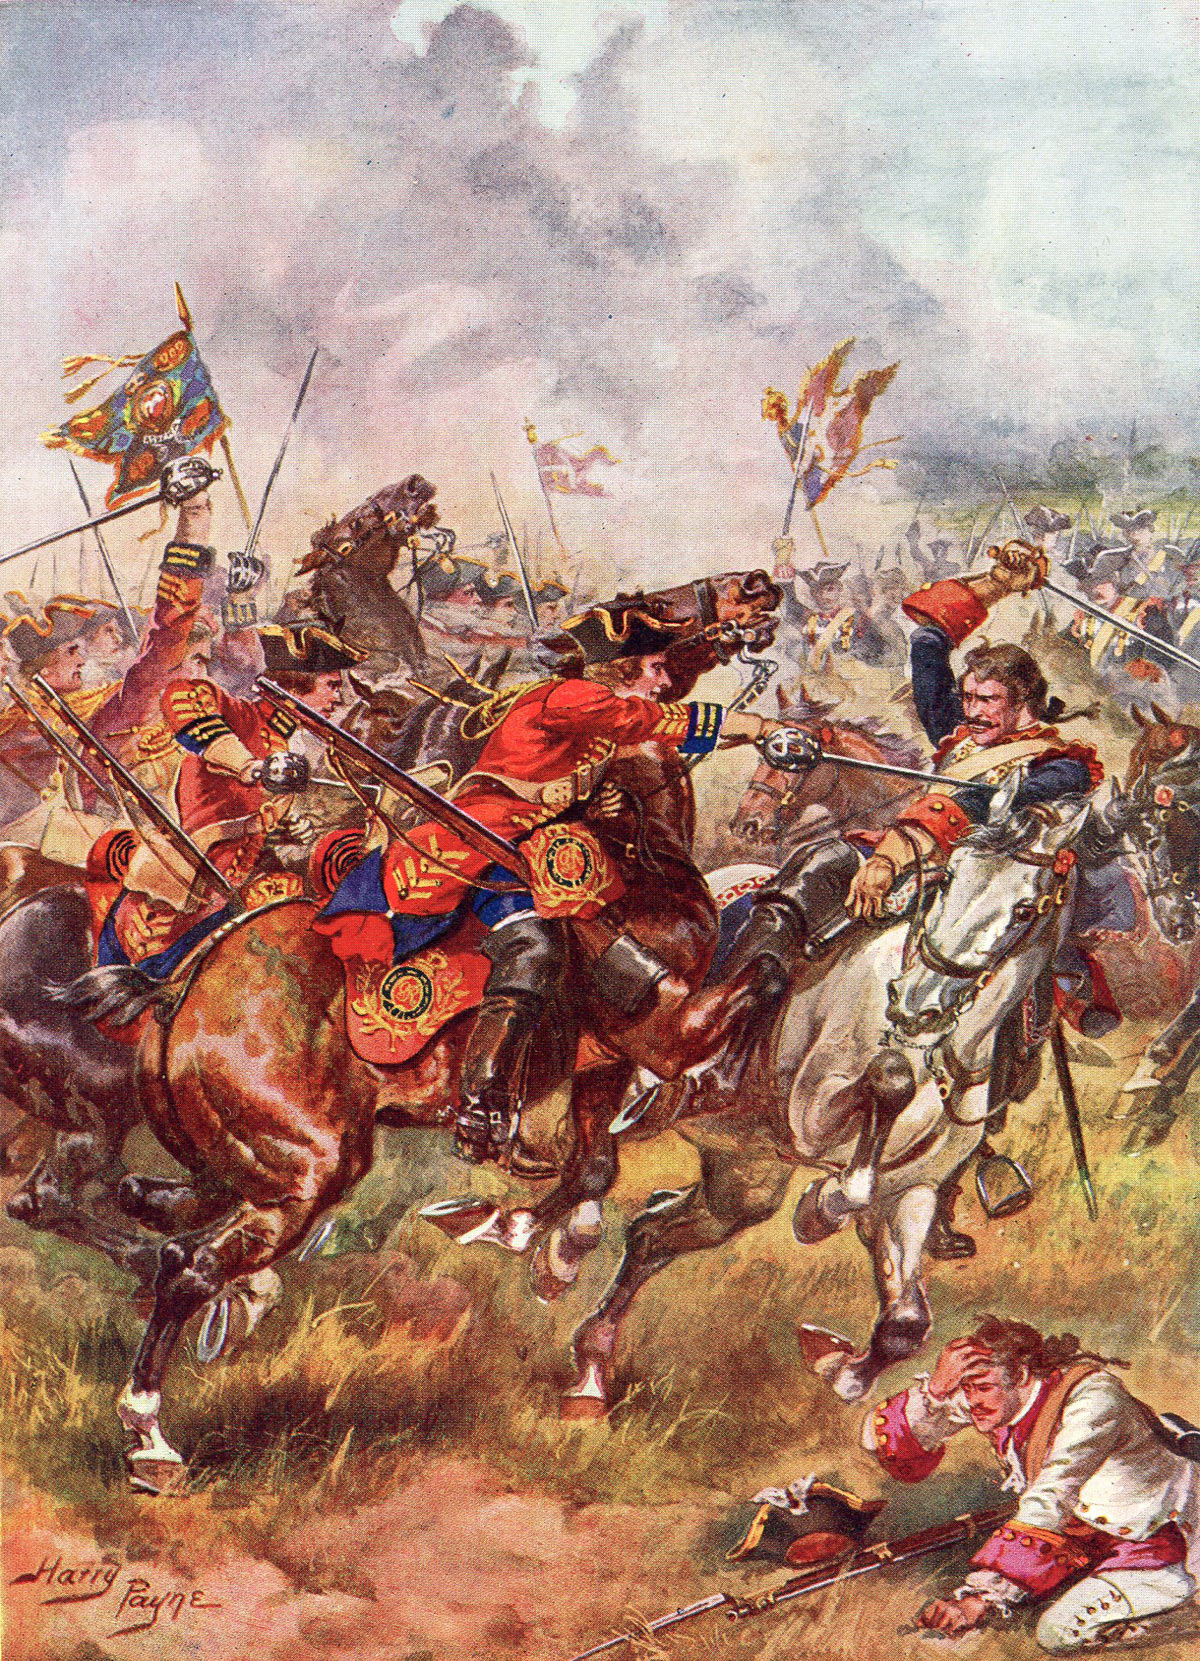 Bland's King's Own Royal Dragoons: Battle of Dettingen fought on 27th June 1743 in the War of the Austrian Succession: picture by Harry Payne